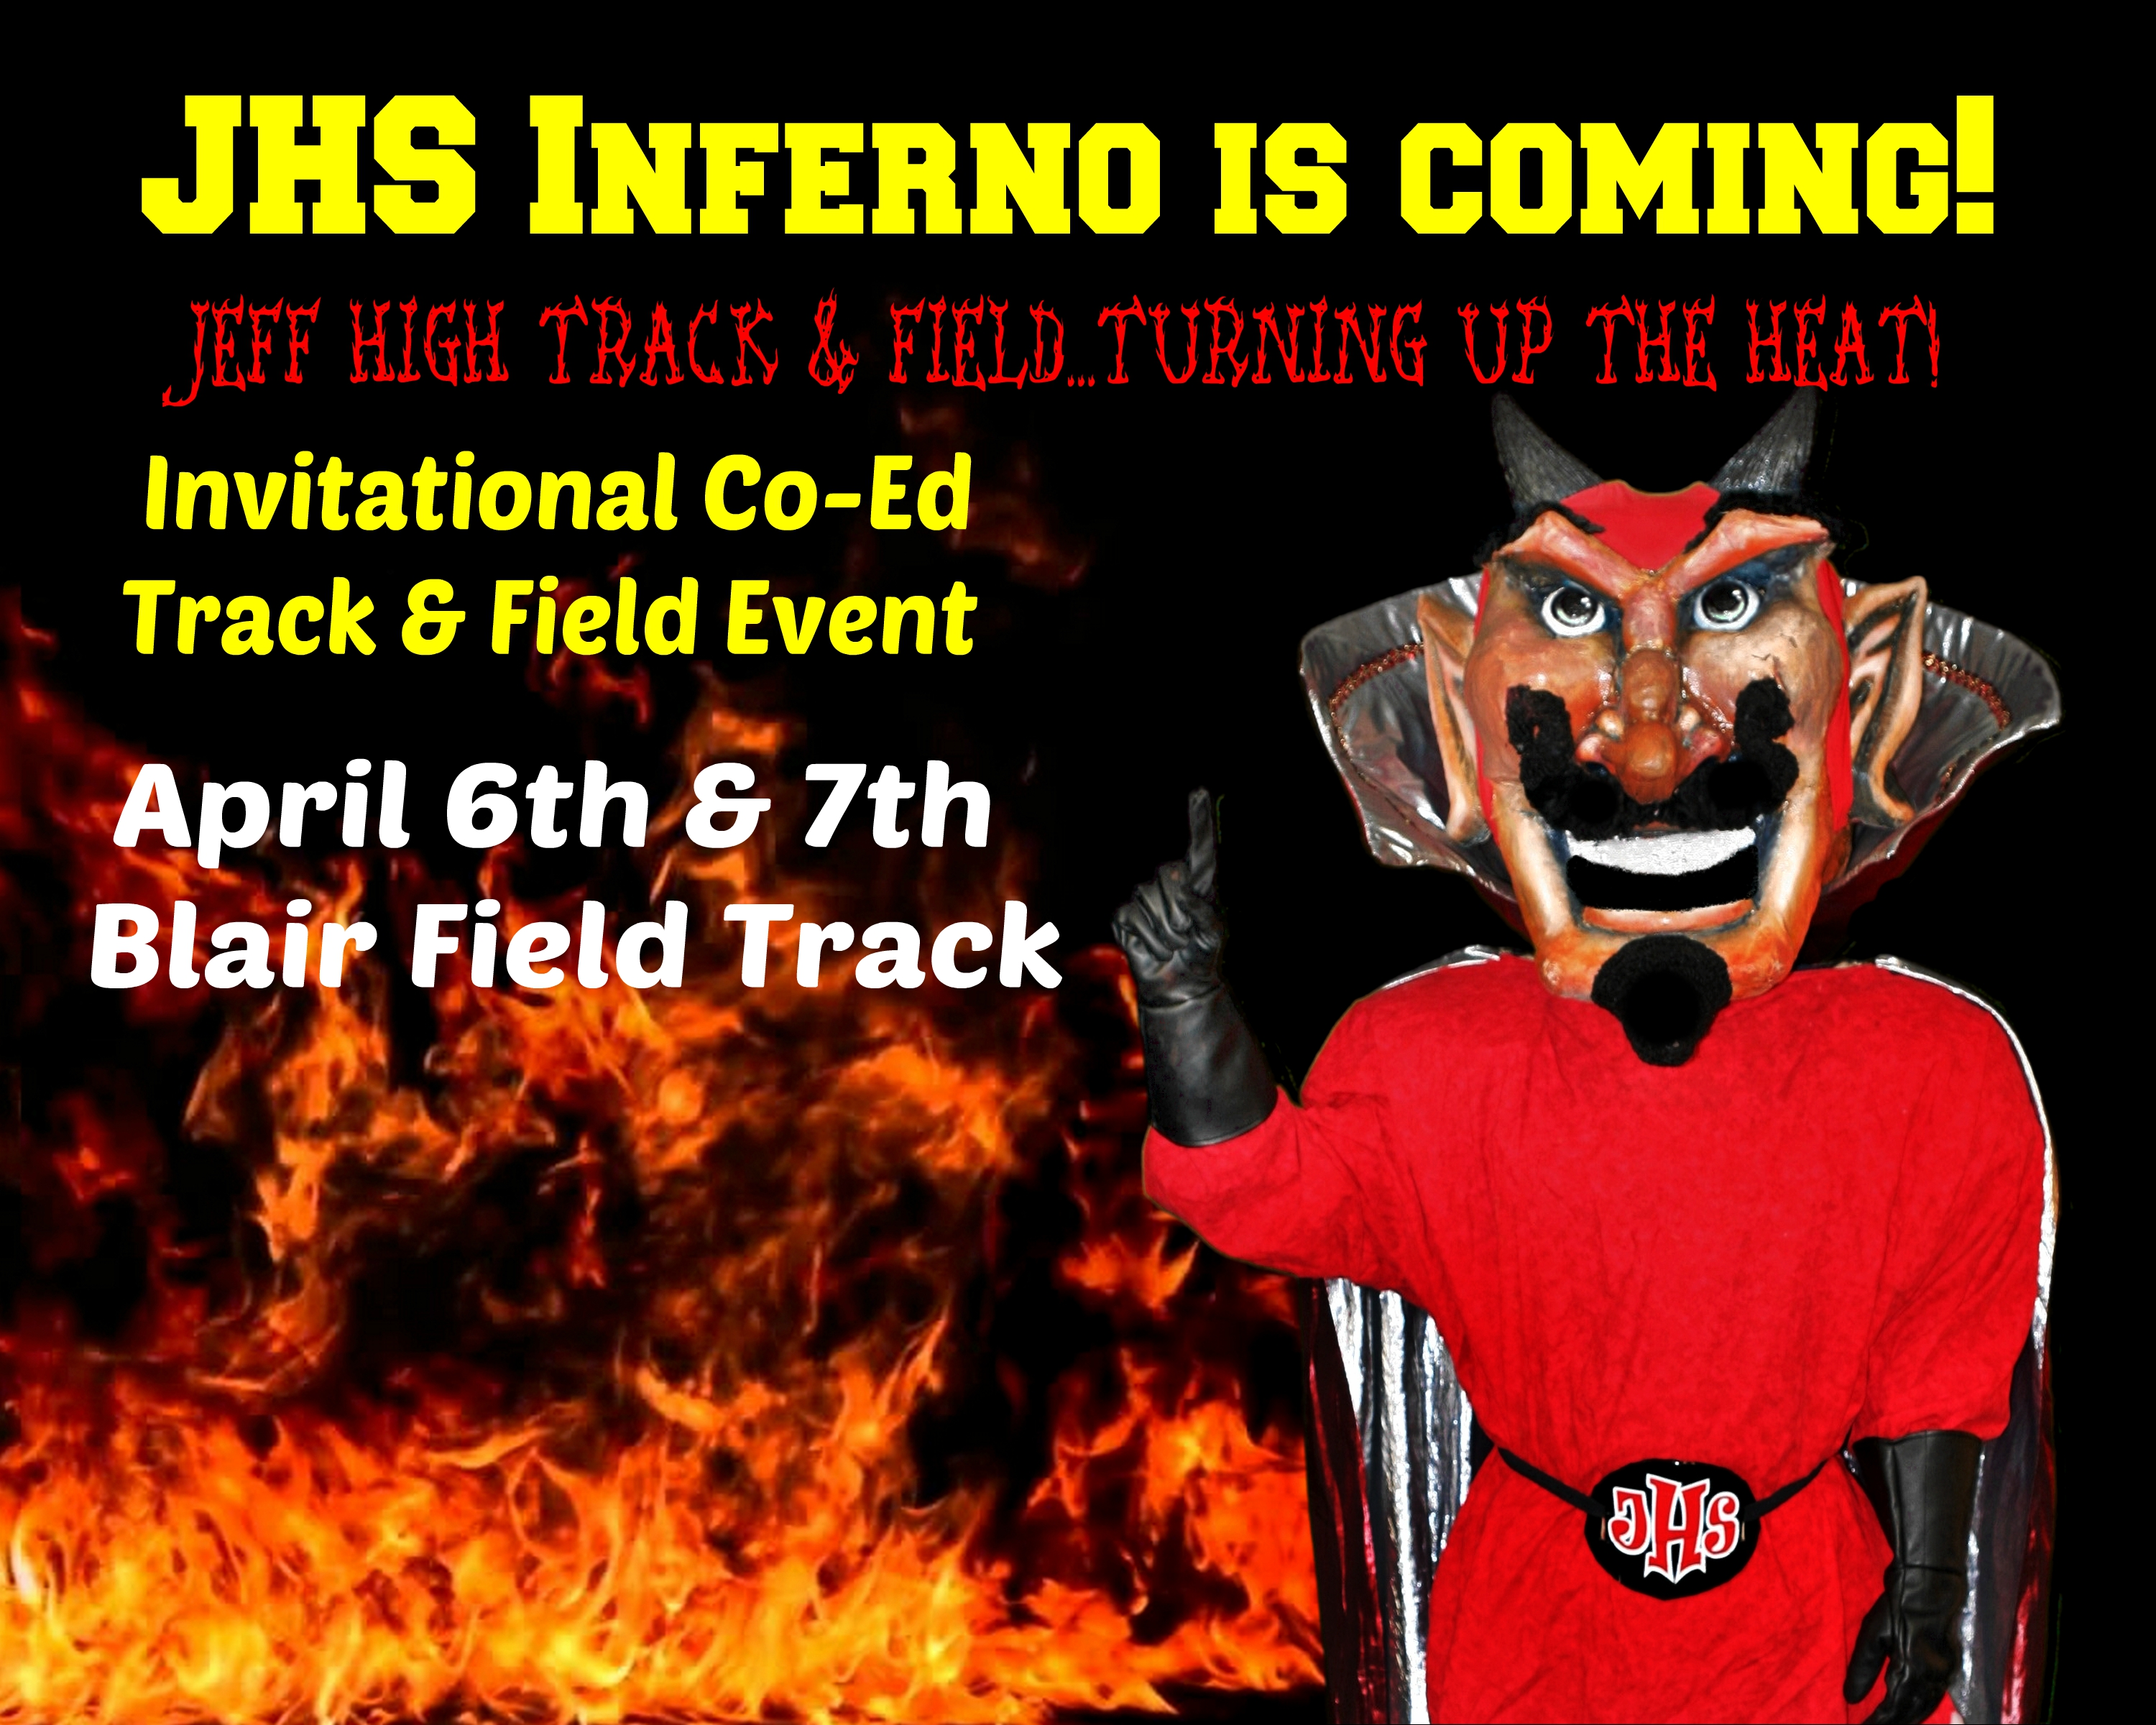 JHS Inferno Track & Field Invitation is coming!